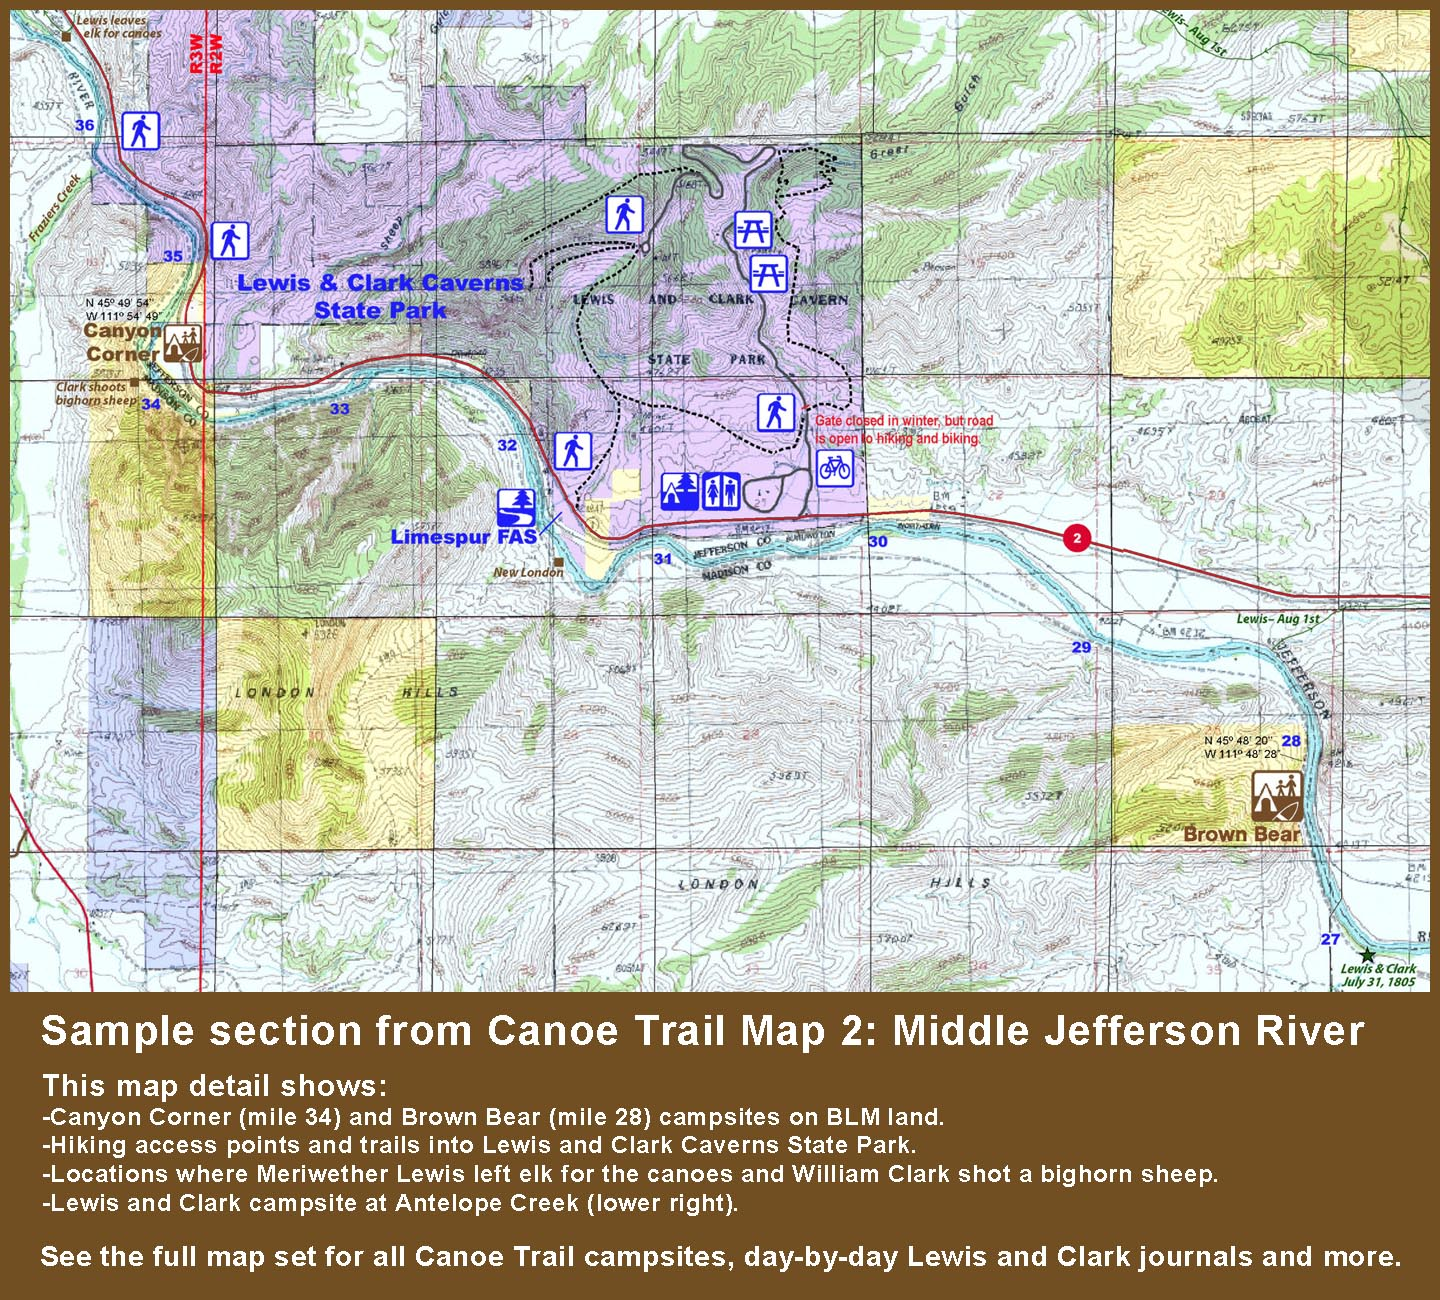 Madison River Montana Map.Jefferson River Canoe Trail Maps Conservation Recreation Lewis